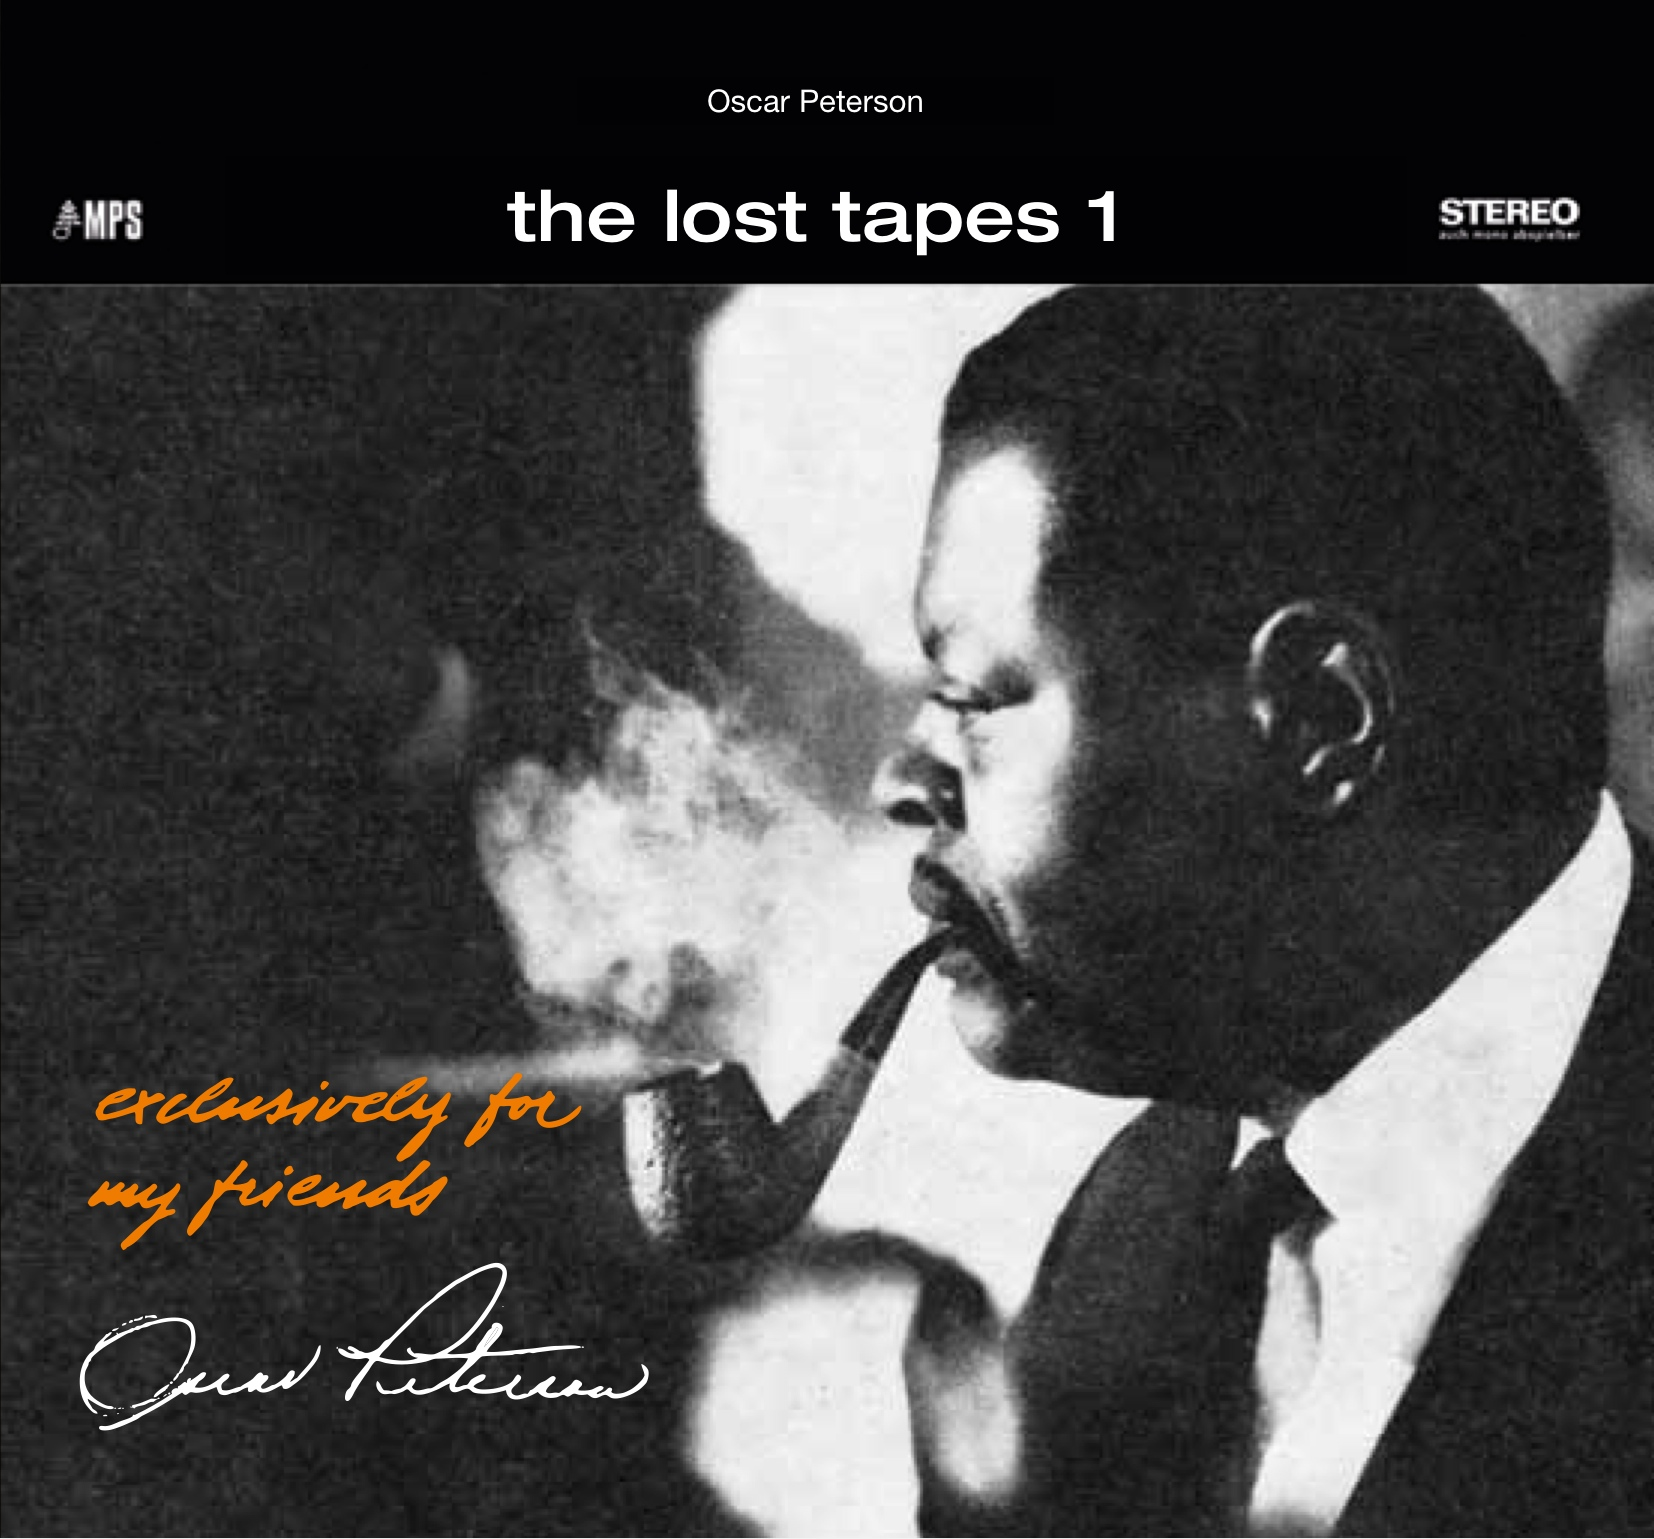 Exclusively My Friends Lost Tapes 1 2 on oscar petersons